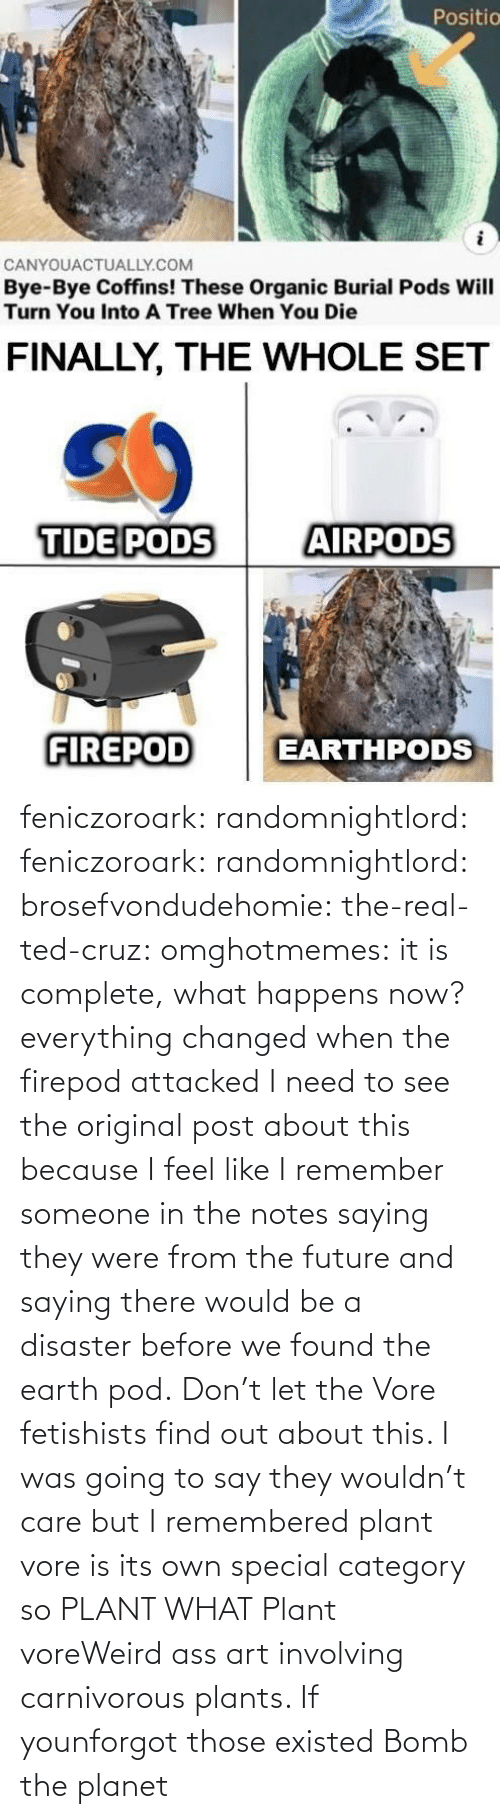 i remember: feniczoroark:  randomnightlord:  feniczoroark:  randomnightlord:  brosefvondudehomie: the-real-ted-cruz:  omghotmemes: it is complete, what happens now? everything changed when the firepod attacked    I need to see the original post about this because I feel like I remember someone in the notes saying they were from the future and saying there would be a disaster before we found the earth pod.    Don't let the Vore fetishists find out about this.    I was going to say they wouldn't care but I remembered plant vore is its own special category so   PLANT WHAT   Plant voreWeird ass art involving carnivorous plants. If younforgot those existed   Bomb the planet